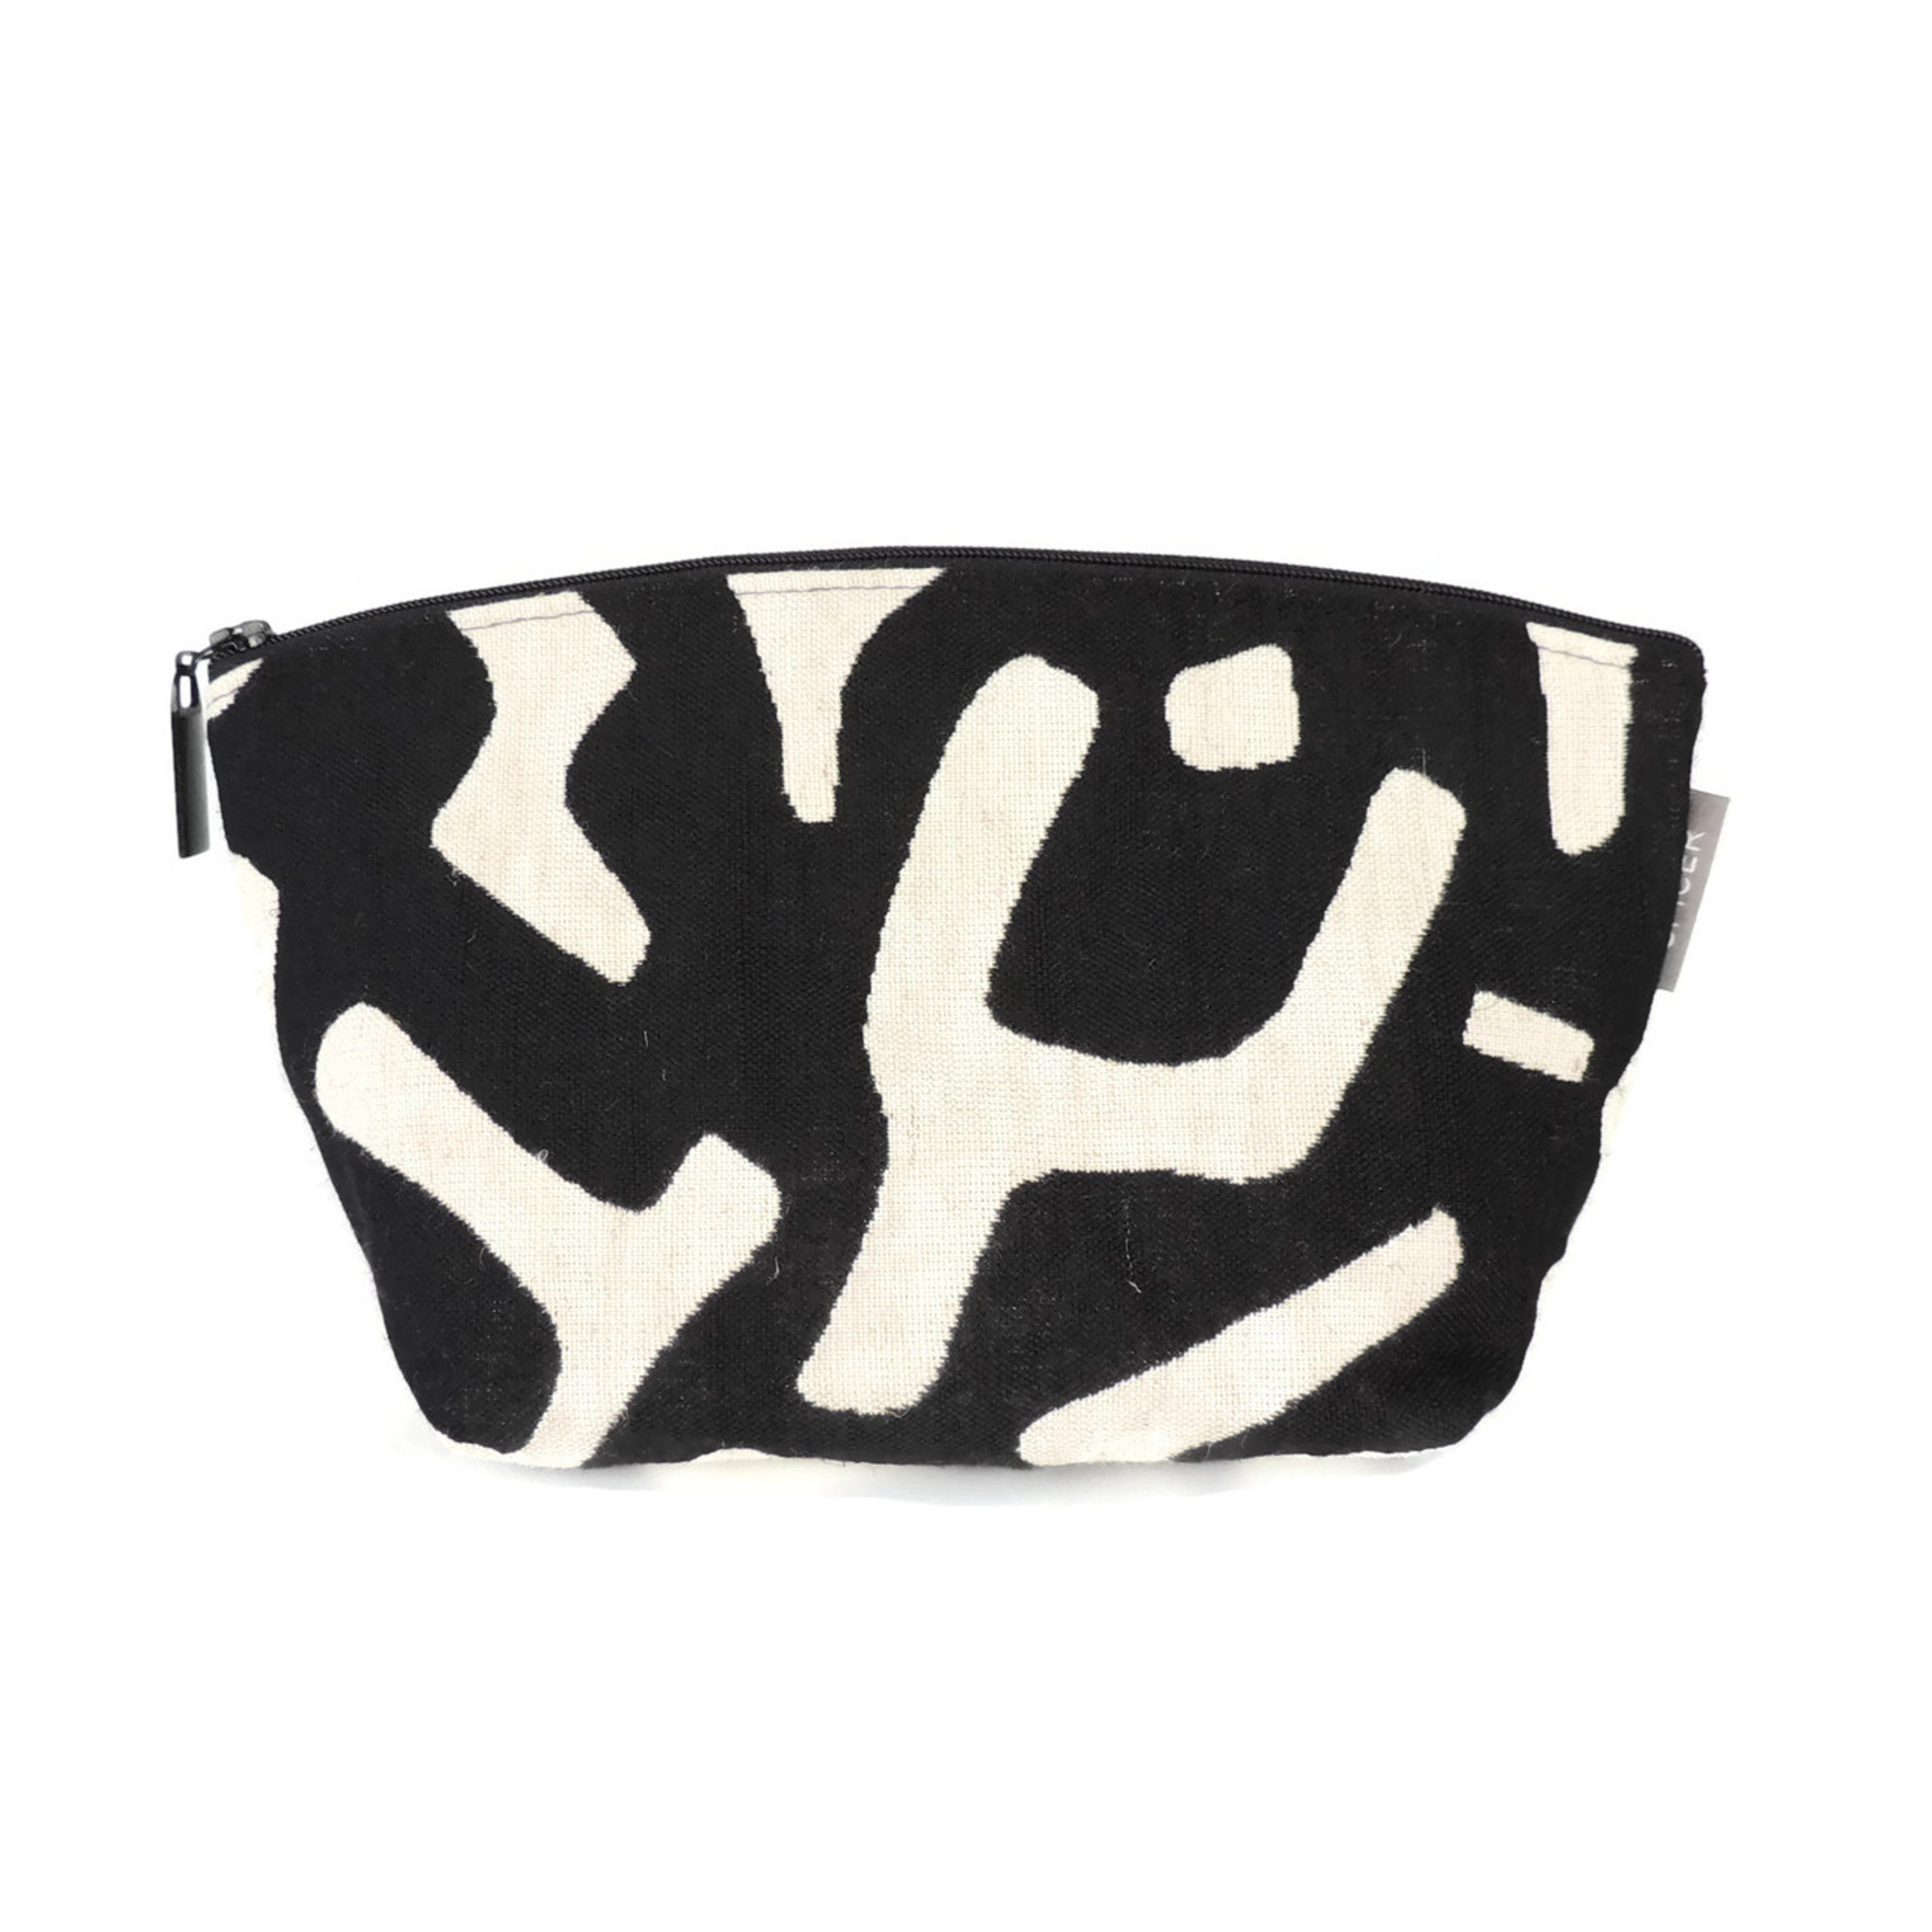 Small Standing Pouch in Modara